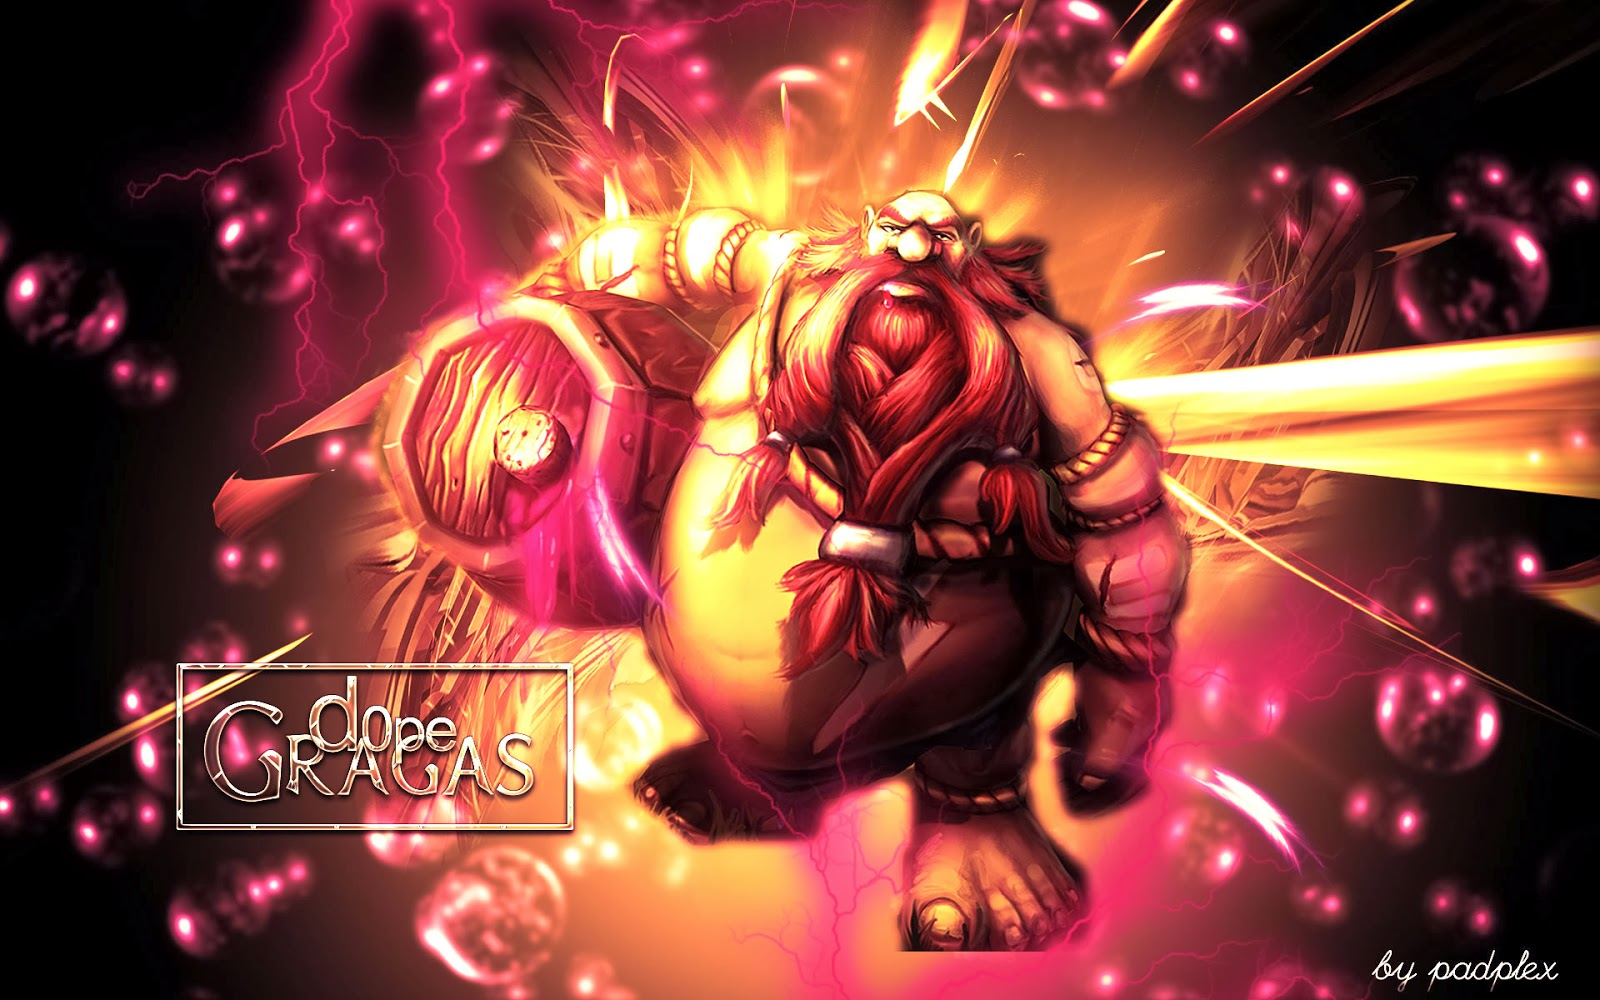 Gragas League of Legends Wallpaper